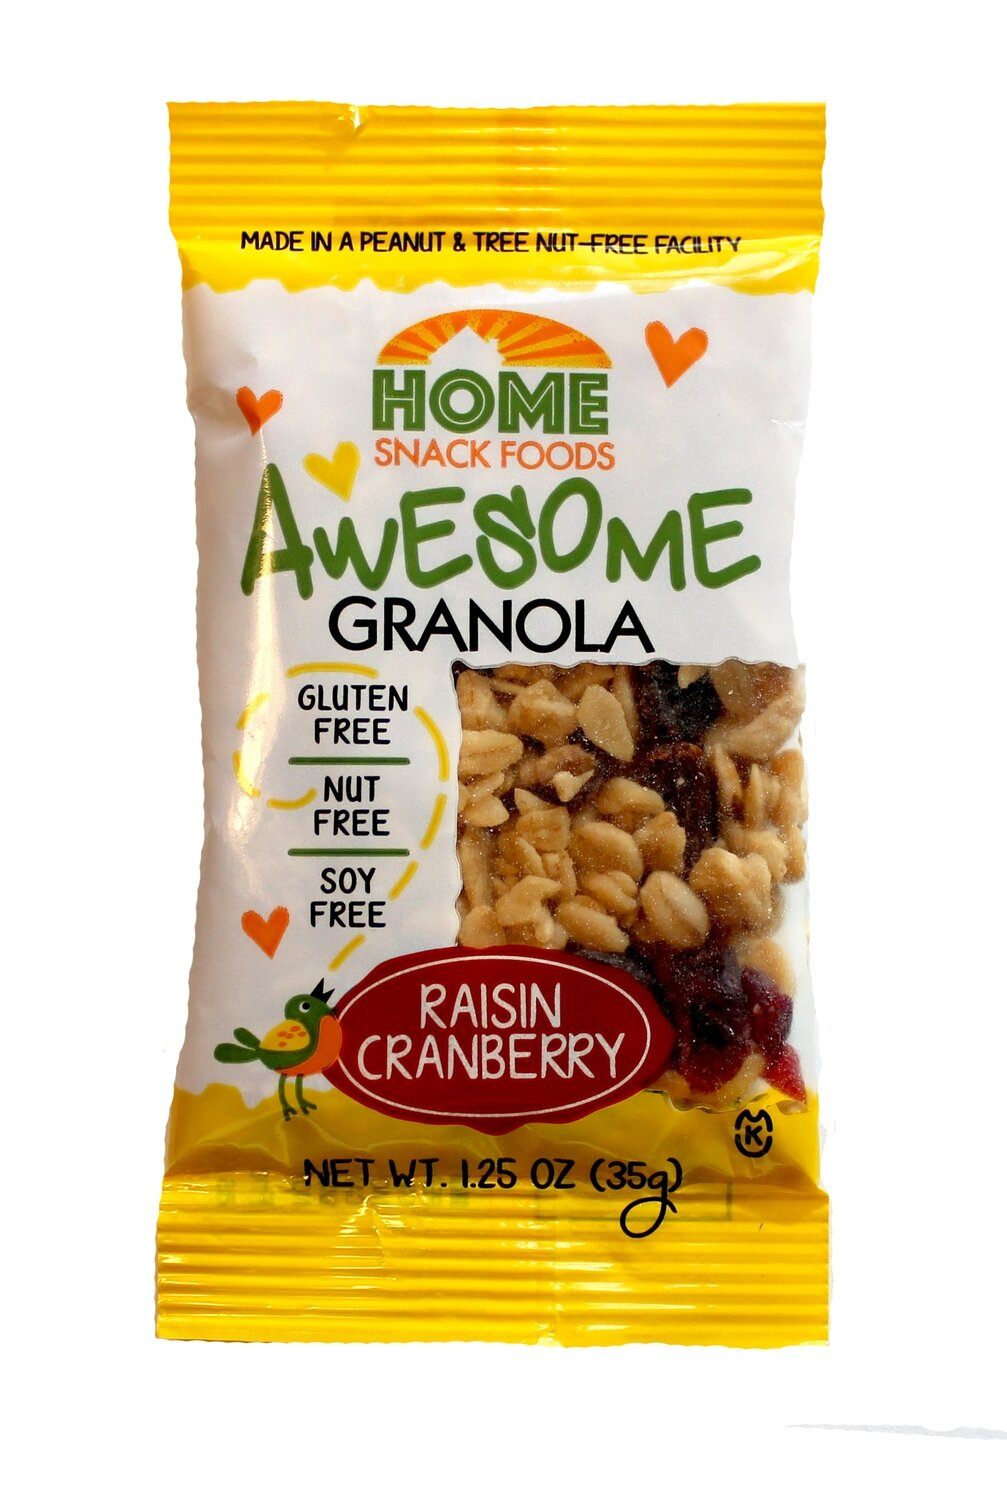 Awesome Granola - Raisin Cranberry 12 Pack - 1.25 oz